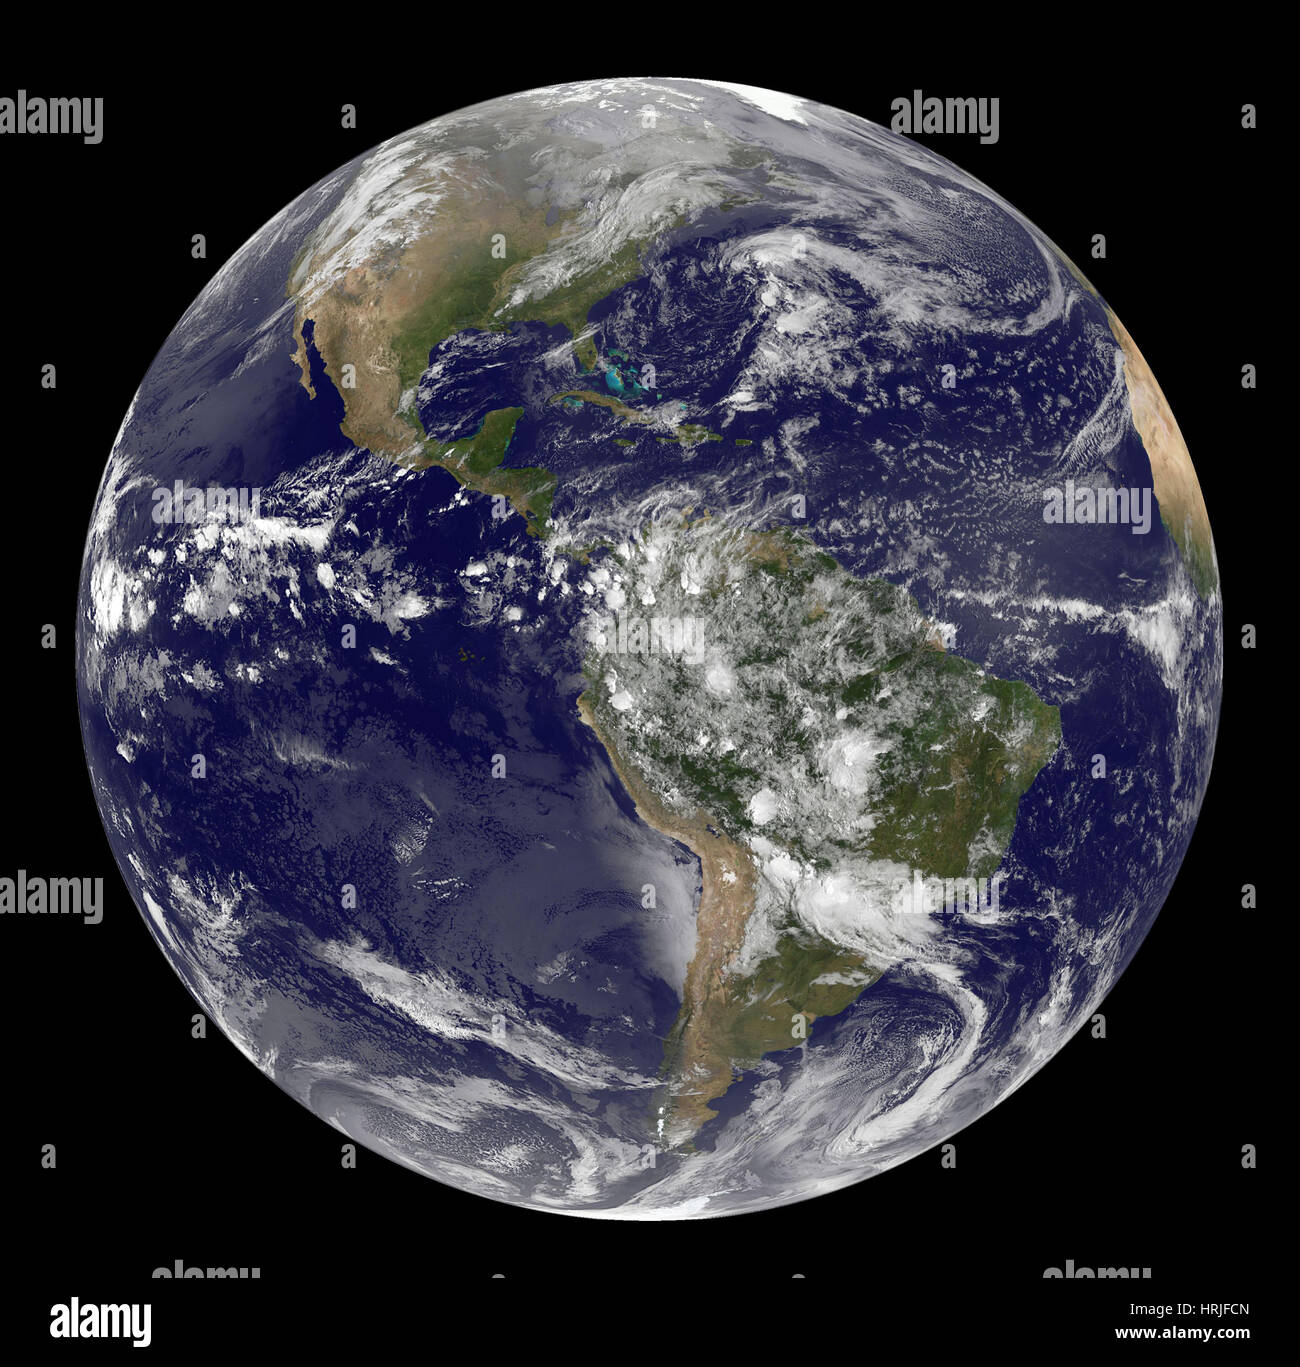 Earth Day 2014 - Stock Image